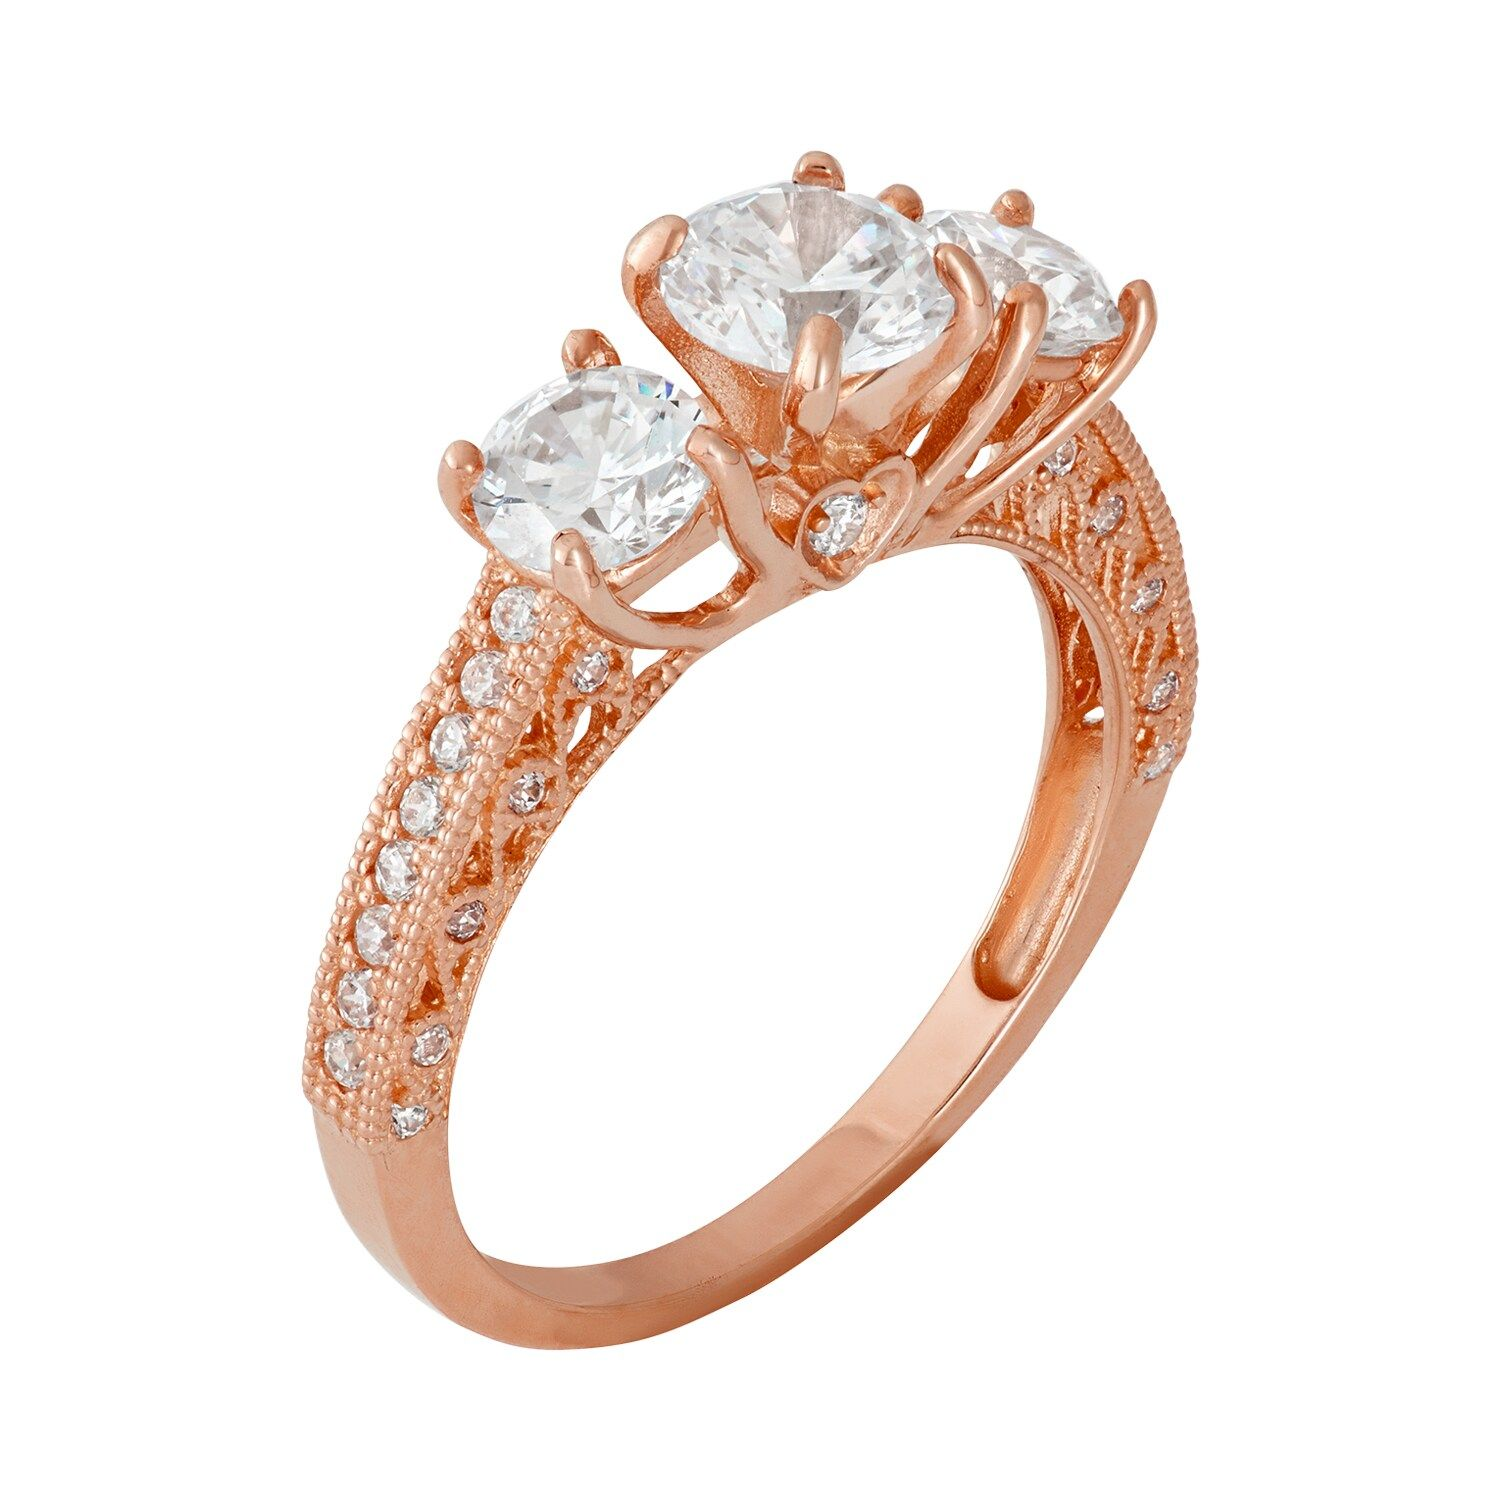 Cubic Zirconia 3 Stone Engagement Ring In 10k Rose Gold In 2020 3 Stone Engagement Rings Stone Engagement Stone Engagement Rings